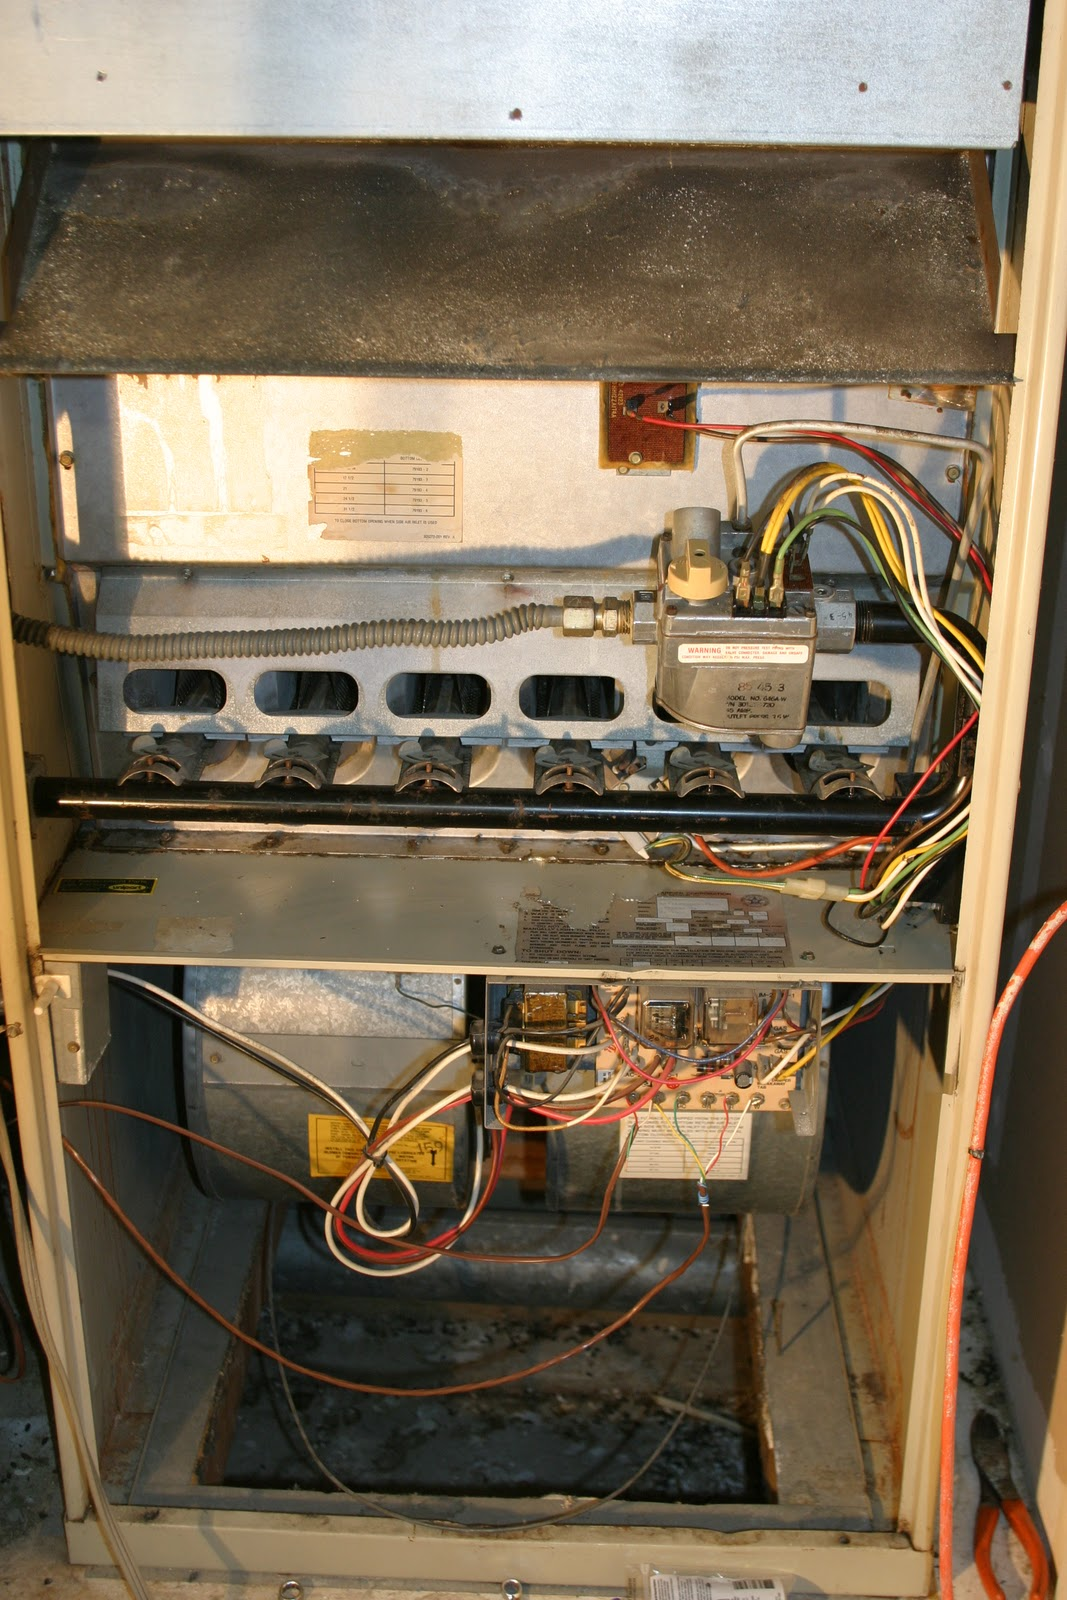 Furnace Blower Humming When Off Uml Diagram From Java Code Fred Leavitt The